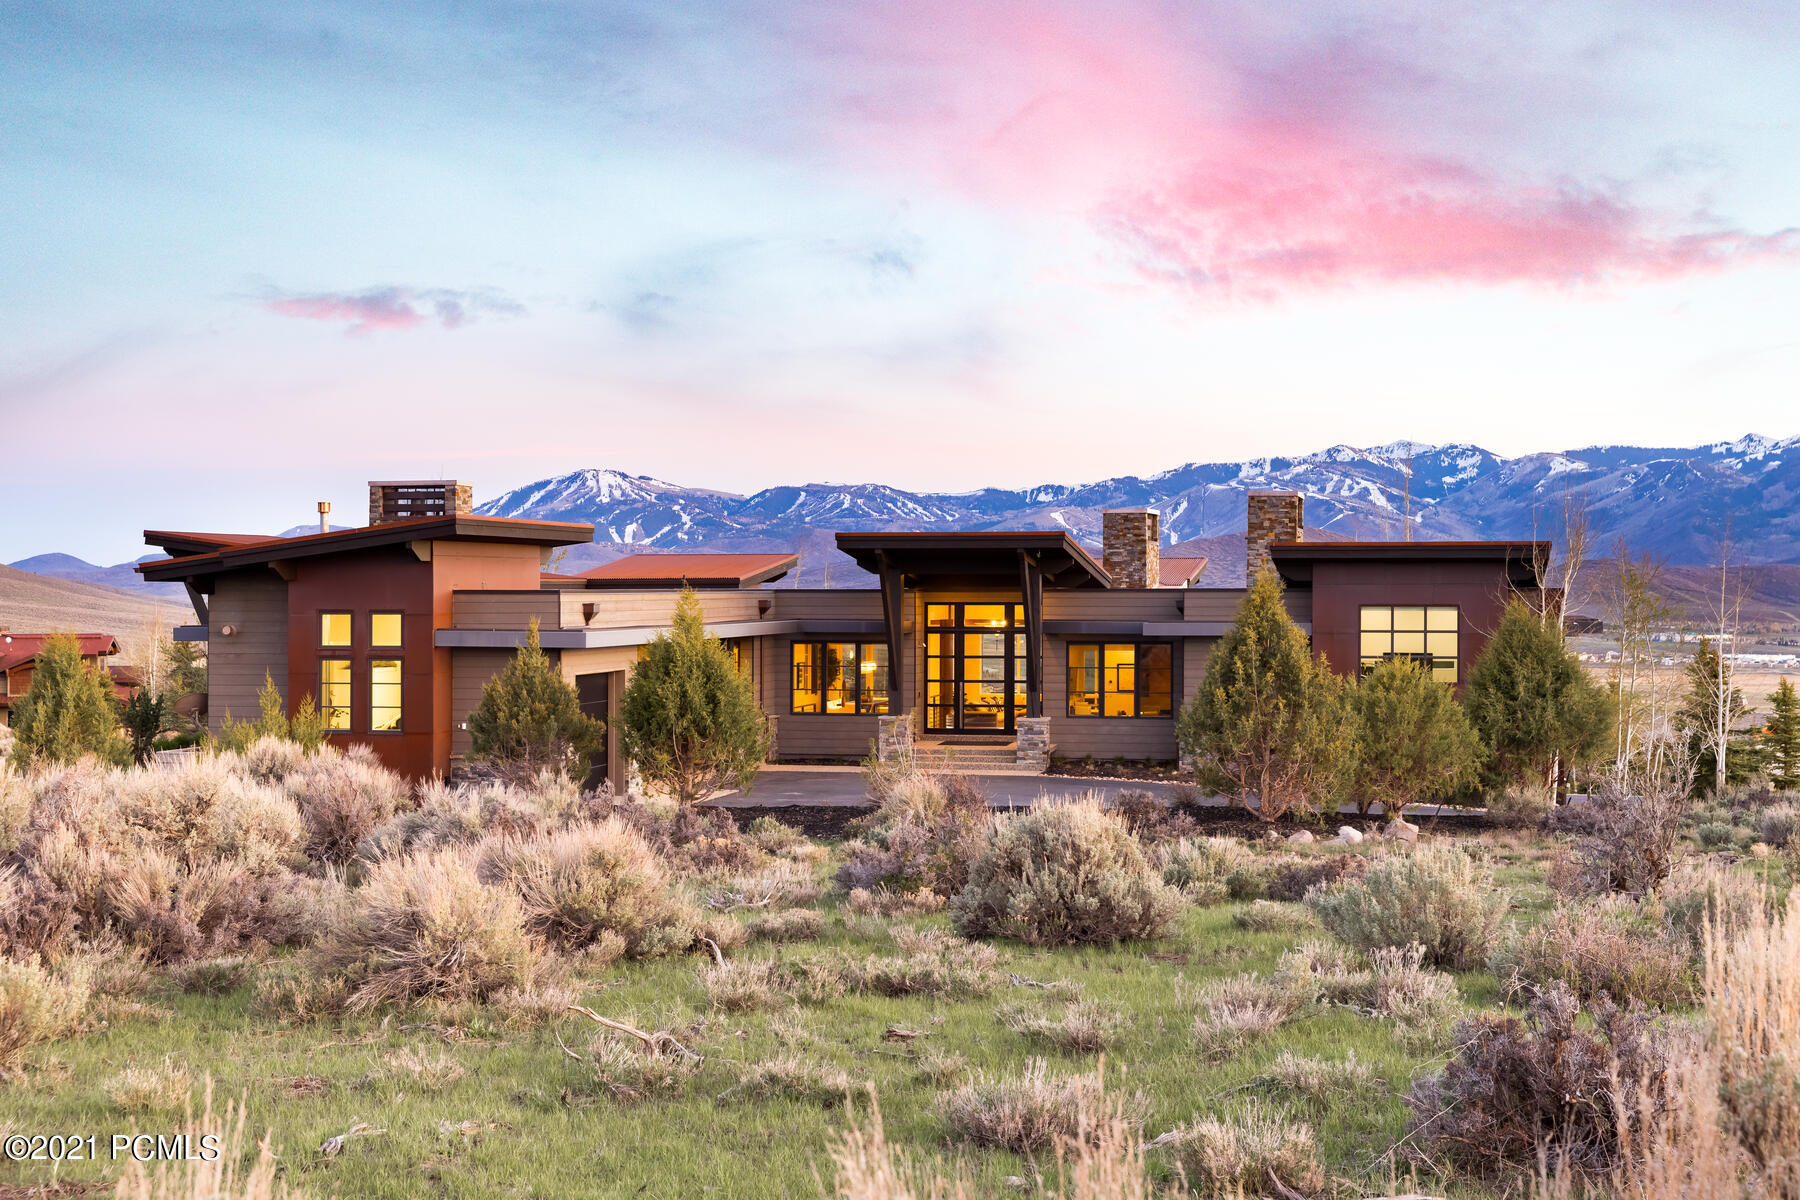 Enter into this exquisite mountain contemporary masterpiece and immediately be struck by the panoramic views from Deer Valley to the Olympic Park, showcased through the incredibly intentional open floor plan and displayed in every room. The lot was picked because of its SW orientation, with walkability to the clubhouse and amenities, and its placement on the 7th hole of the Pete Dye Signature Golf course. All seasons entertaining is made easy when your chef's kitchen is the heart of this open concept. Mingle and prepare everything from a feast to a simple snack with state of the art double ovens, steam oven, outdoor kitchen, double island, and hidden pantry. Custom La Cantina doors open from the nook living room and the dining room to covered, heated decks where you can spend the evenings dining under the stars and then roasting marshmallows around the glowing fire pit. Enjoy main level living featuring a master suite and second guest suite. Four additional bedrooms, family room, game tables are on the lower level as well as a wine room and home gym. Experience the ultimate mountain lifestyle with the Promontory clubs 14 incredible amenities, while enjoying the privacy and serenity of this exquisite home.